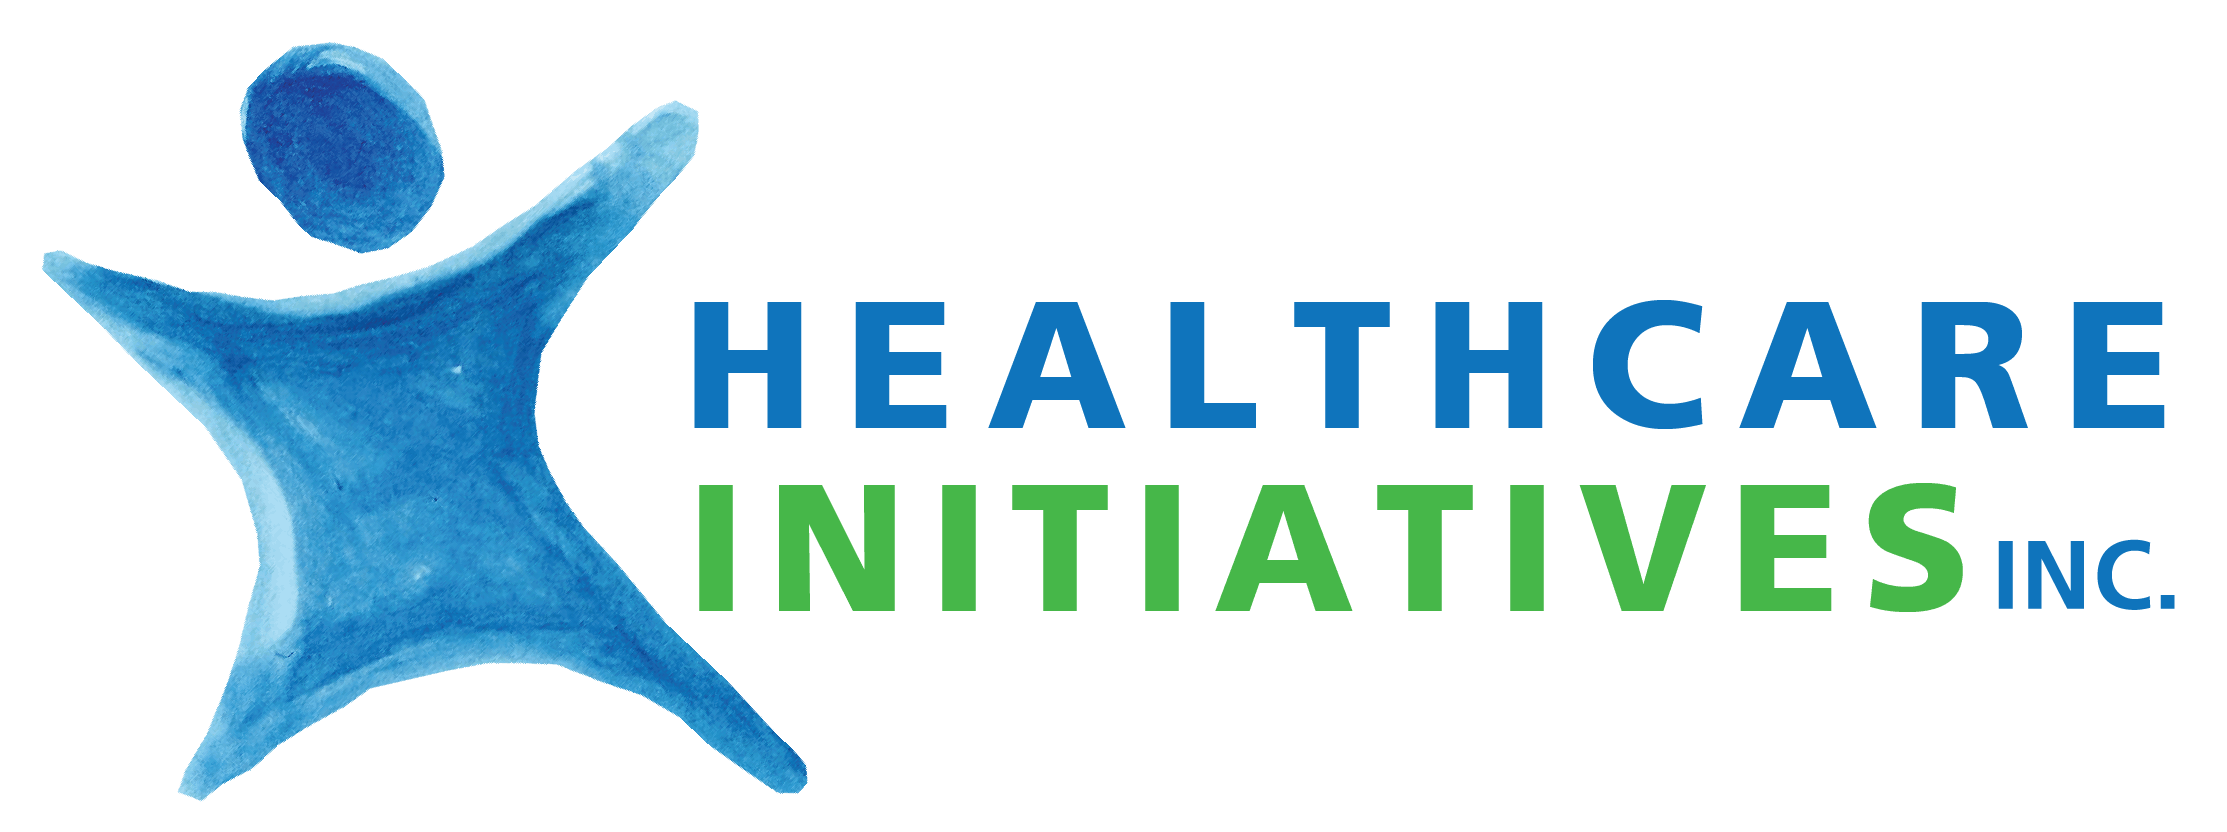 Healthcare Initiatives Inc.